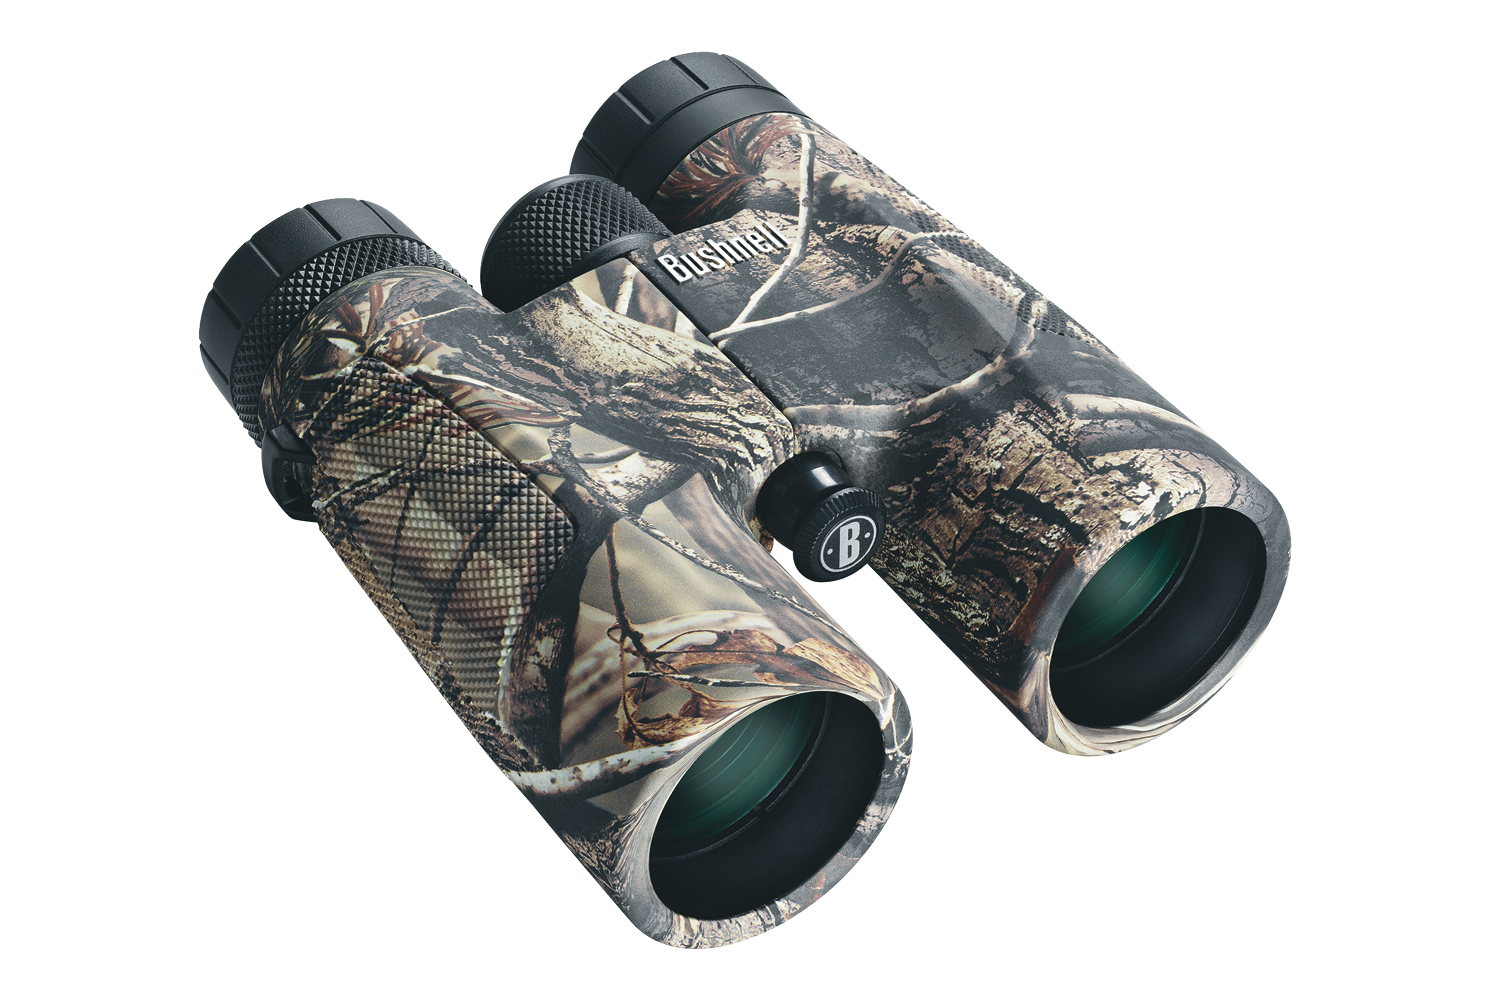 Бинокль Bushnell PowerView ROOF 10x42 camo бинокль carl zeiss 10x42 hd conquest